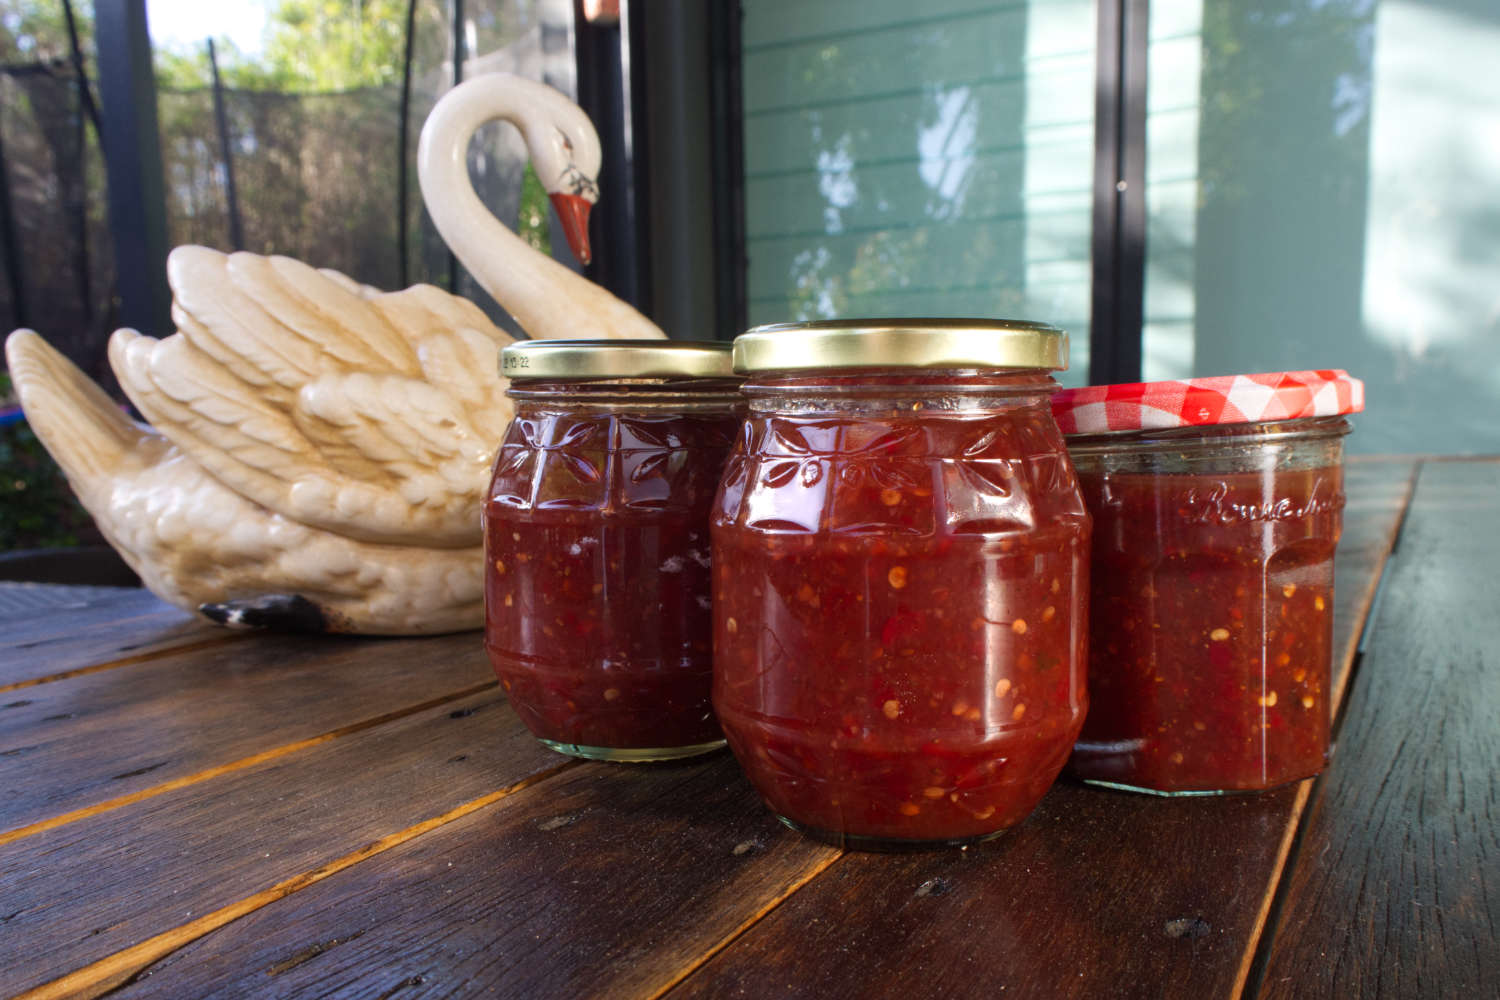 Strawberry Chilli Jam in jars